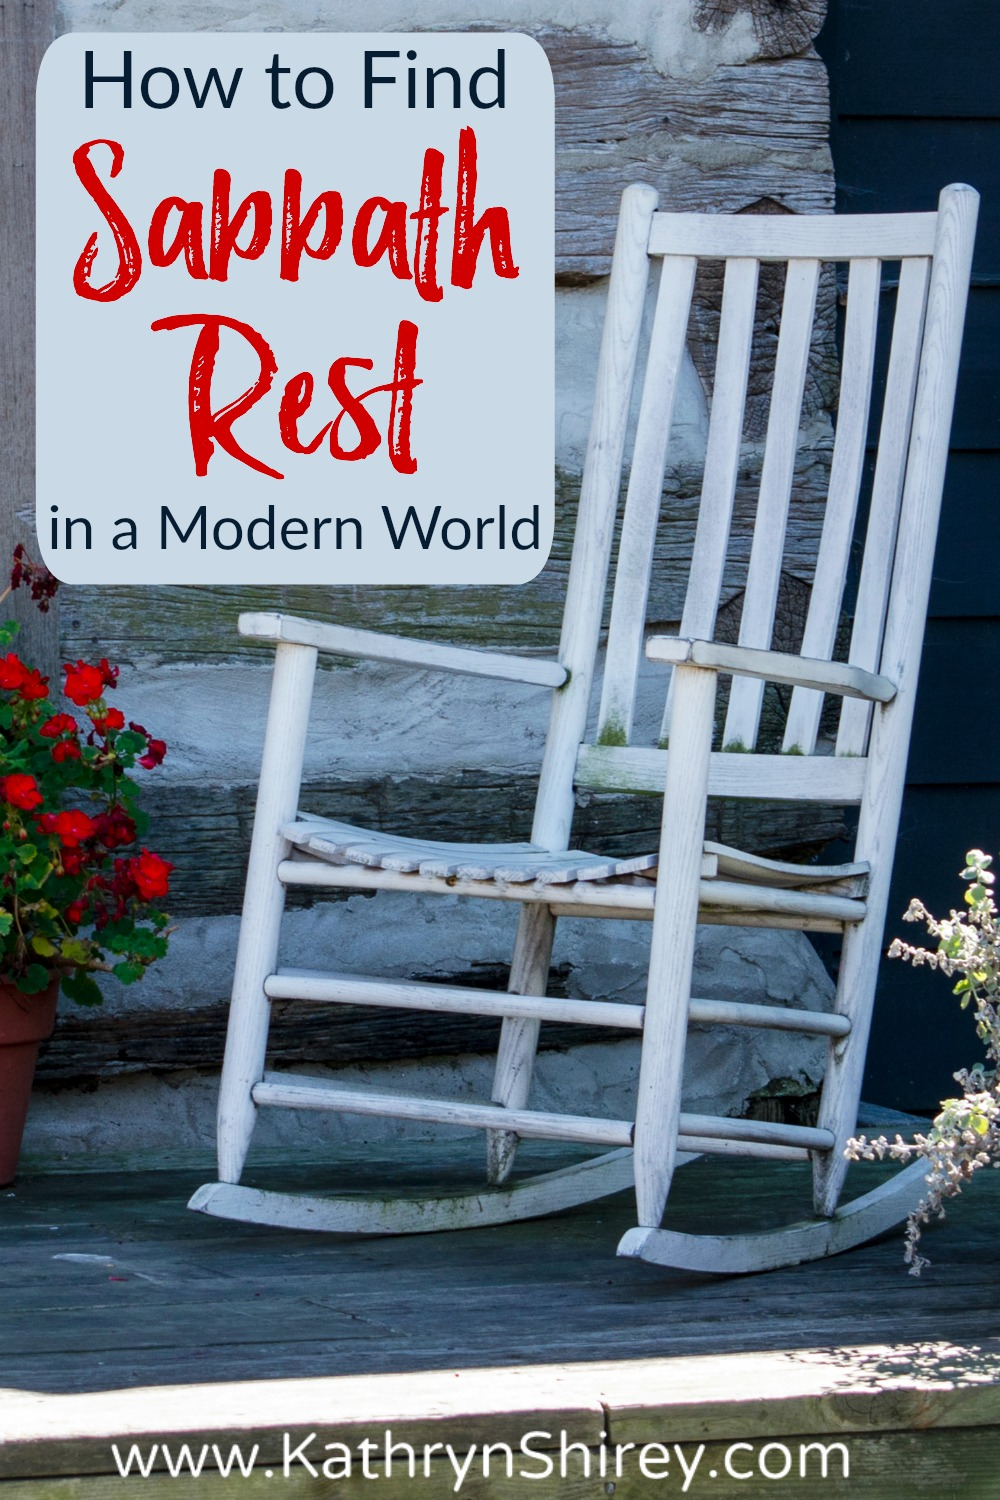 Sabbath rest is still crucial - even in our busy, modern Christian lives. It's a time to rest and be restored by God. Learn how you can find Sabbath rest even in your busy life! #sabbath